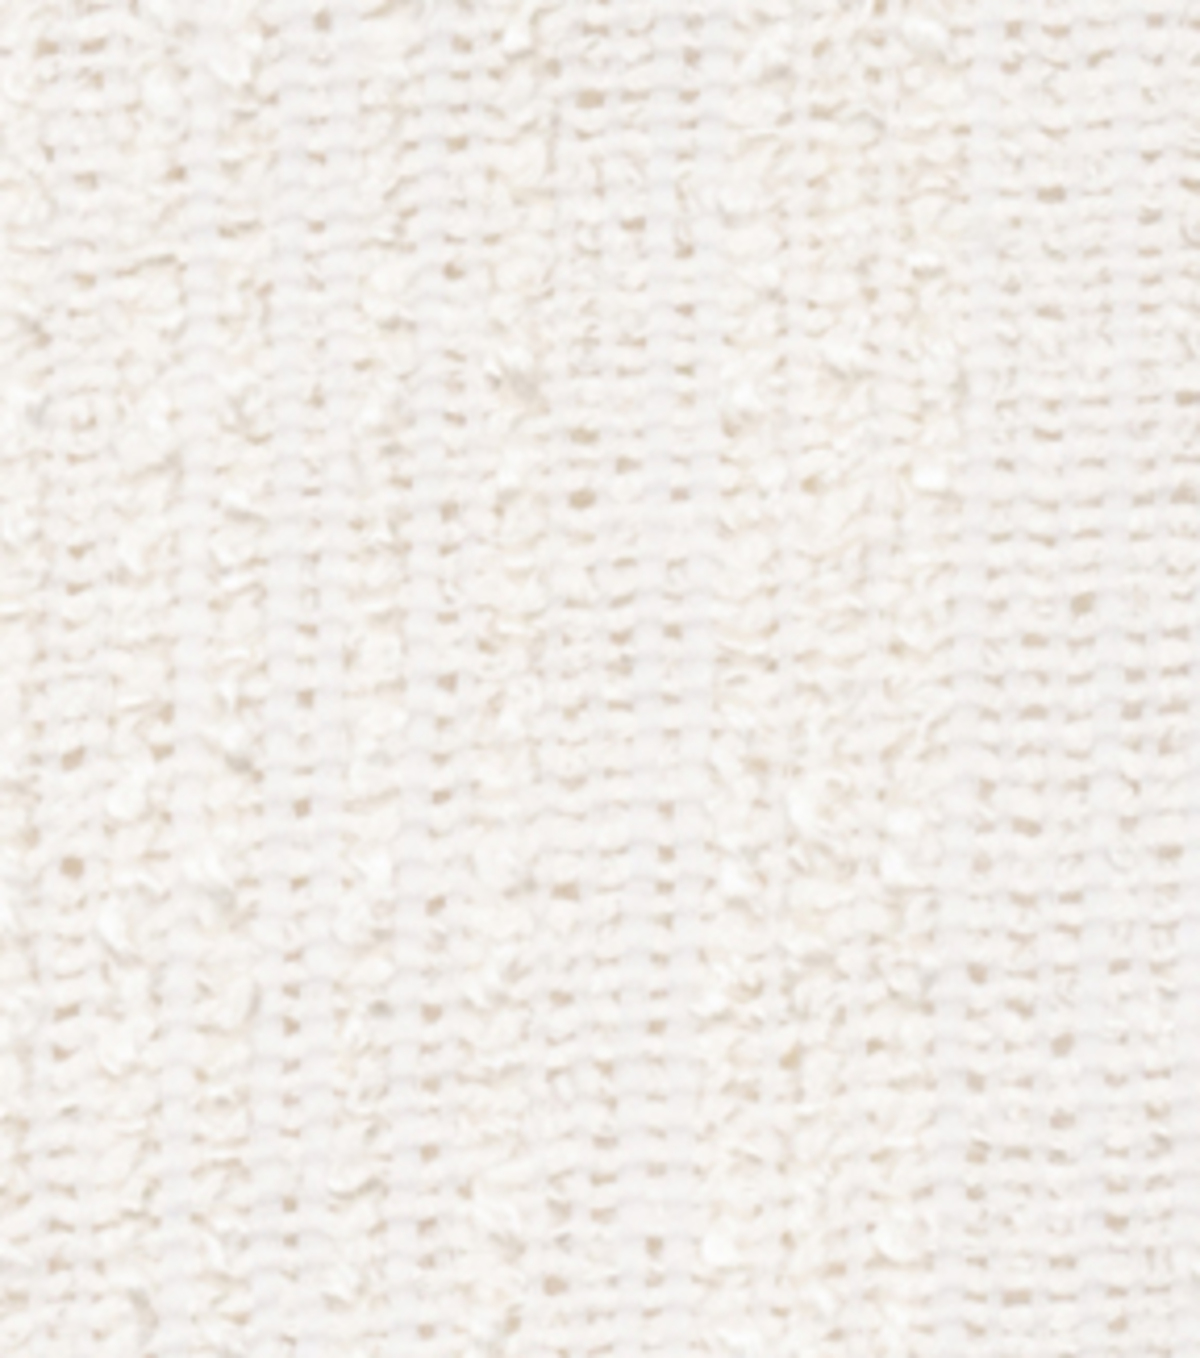 Home Decor 8\u0022x8\u0022 Fabric Swatch-Eaton Square Achieve White